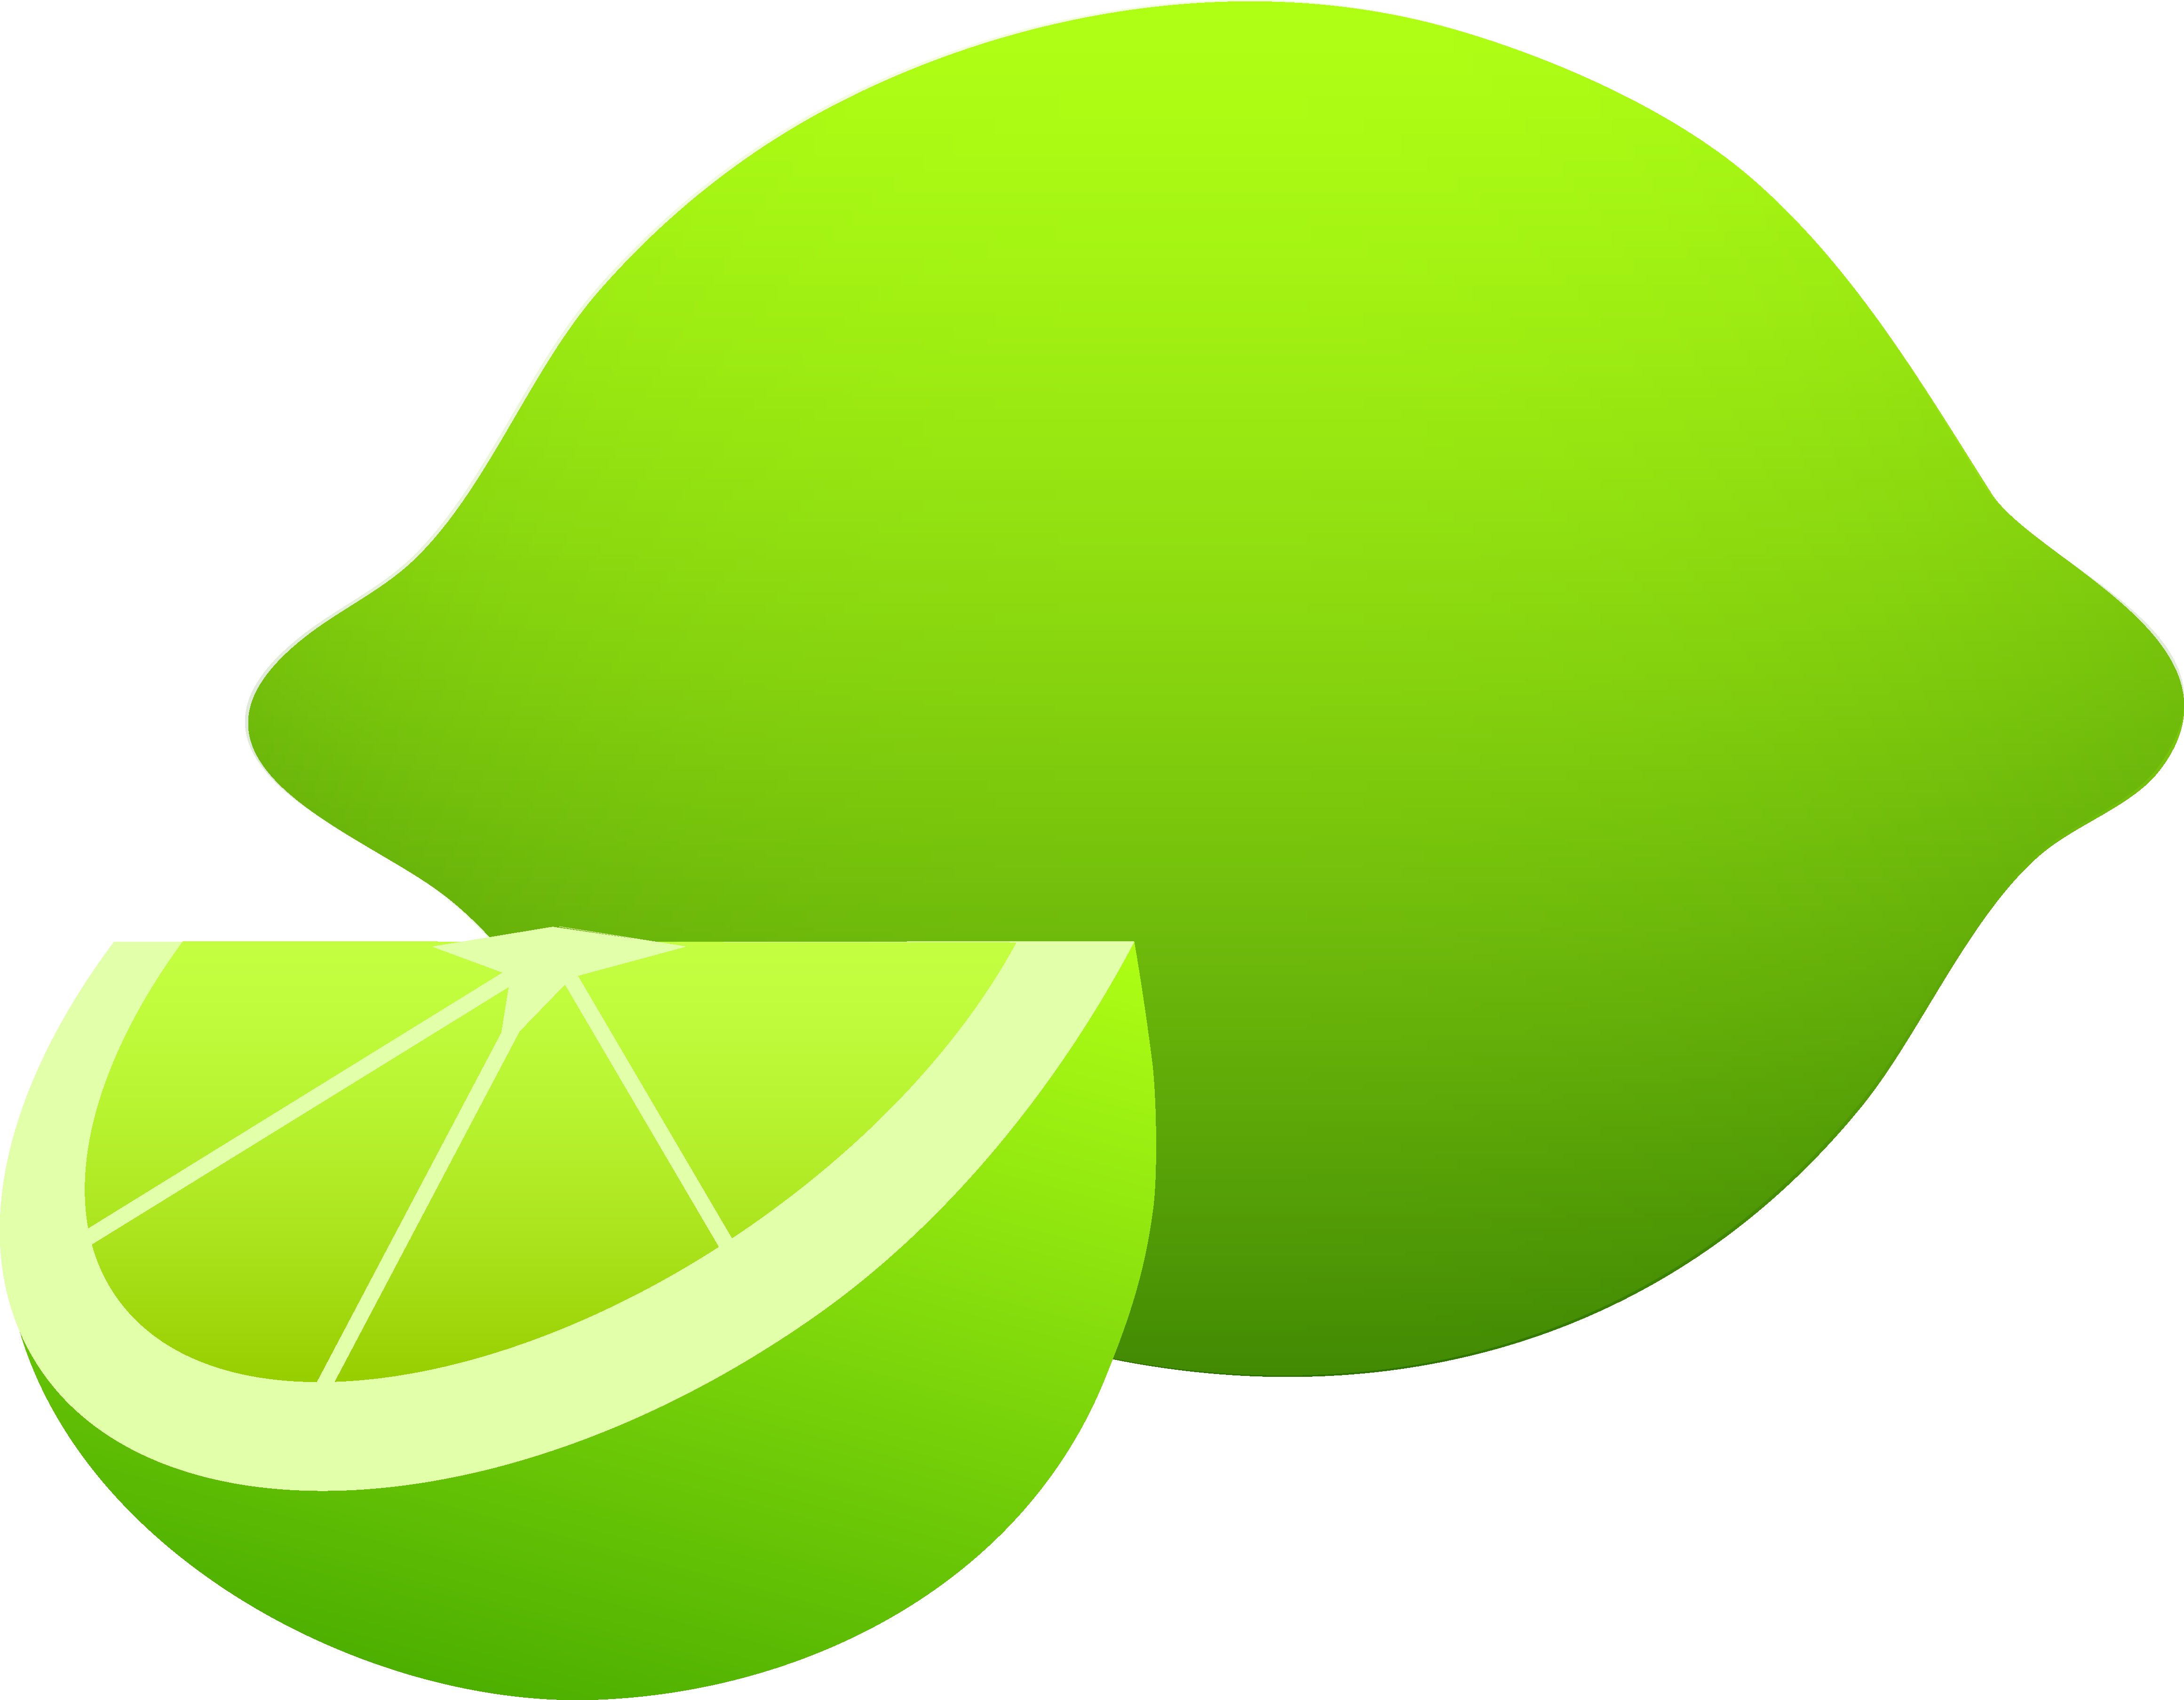 Lime Free Clipart.